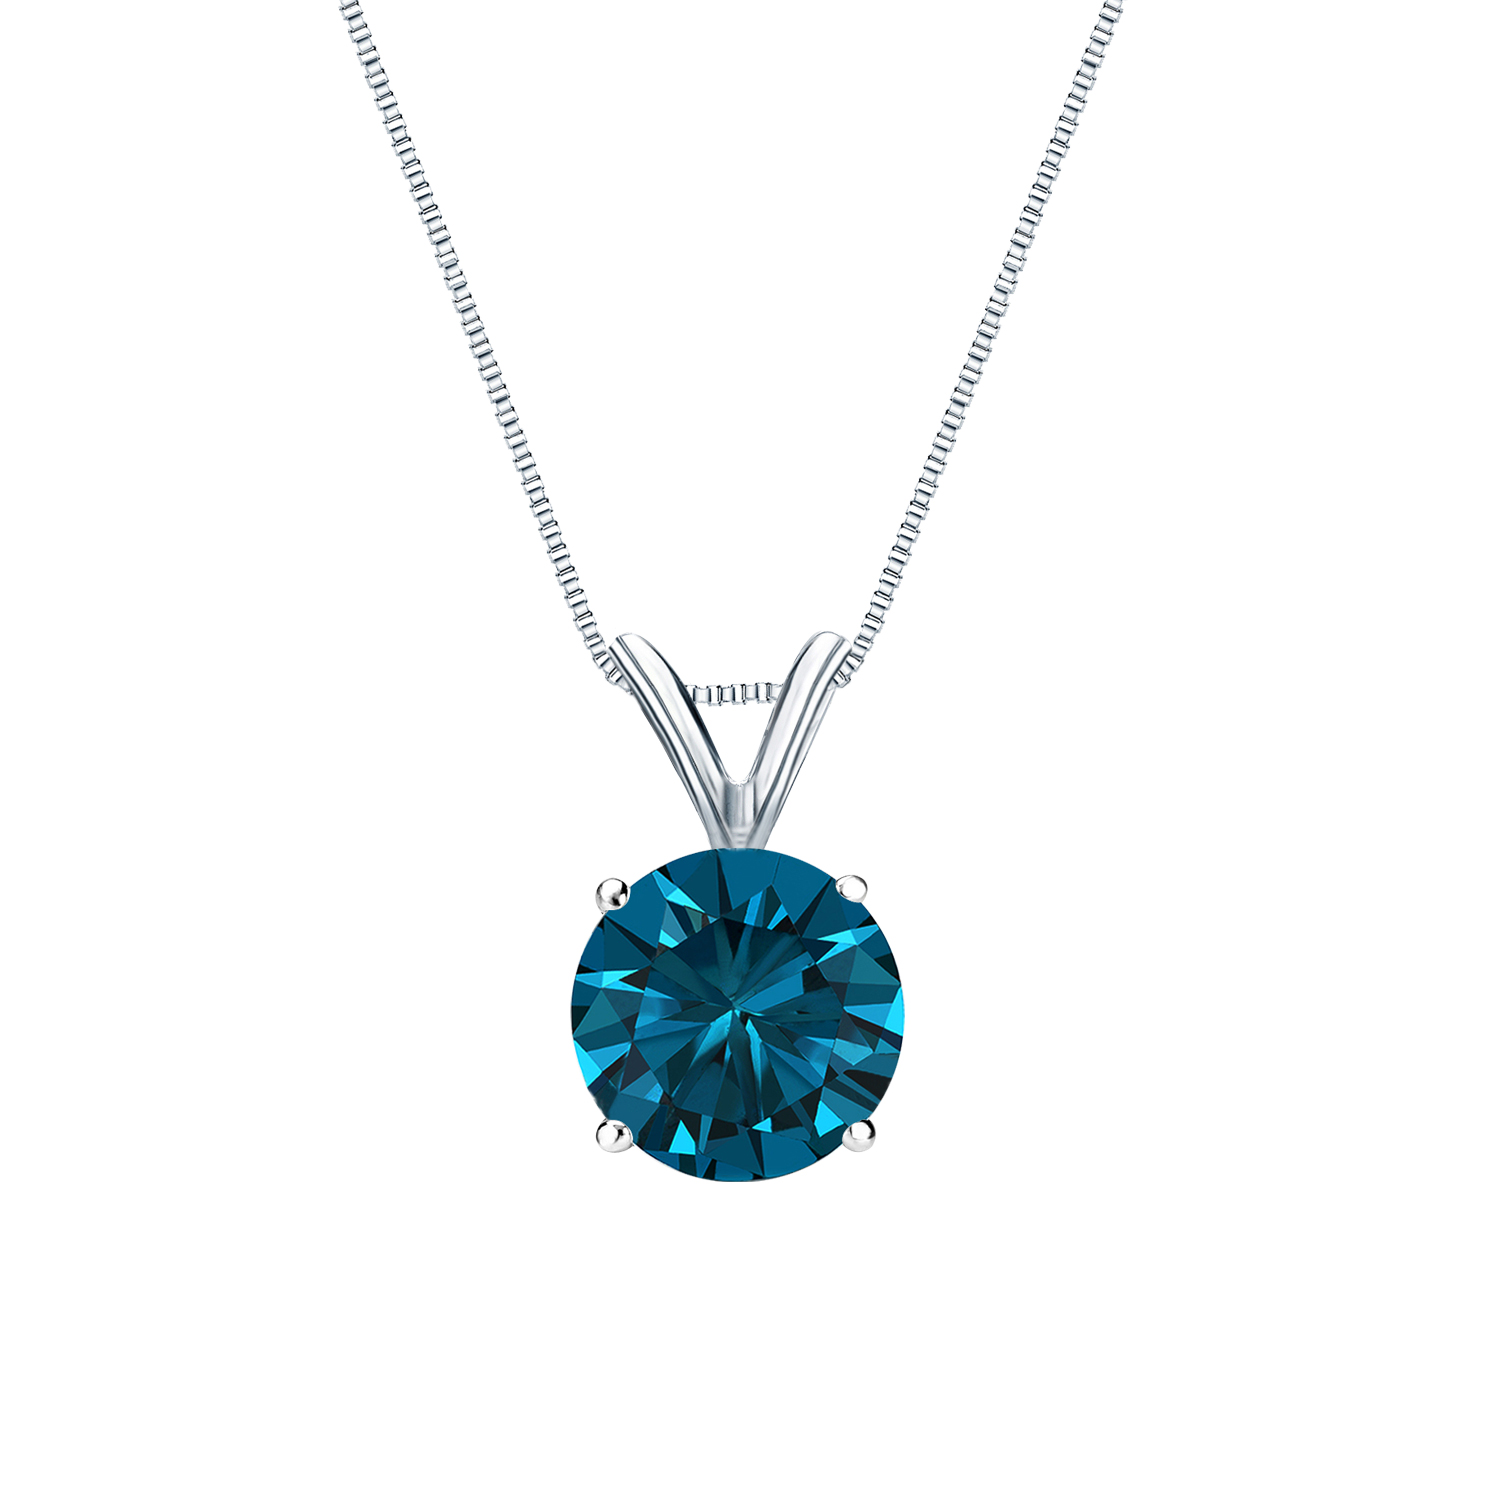 Certified 0.17 ct. tw. Round Blue Diamond Solitaire Pendant in 18k White Gold 4-Prong Basket (Blue, SI1-SI2)